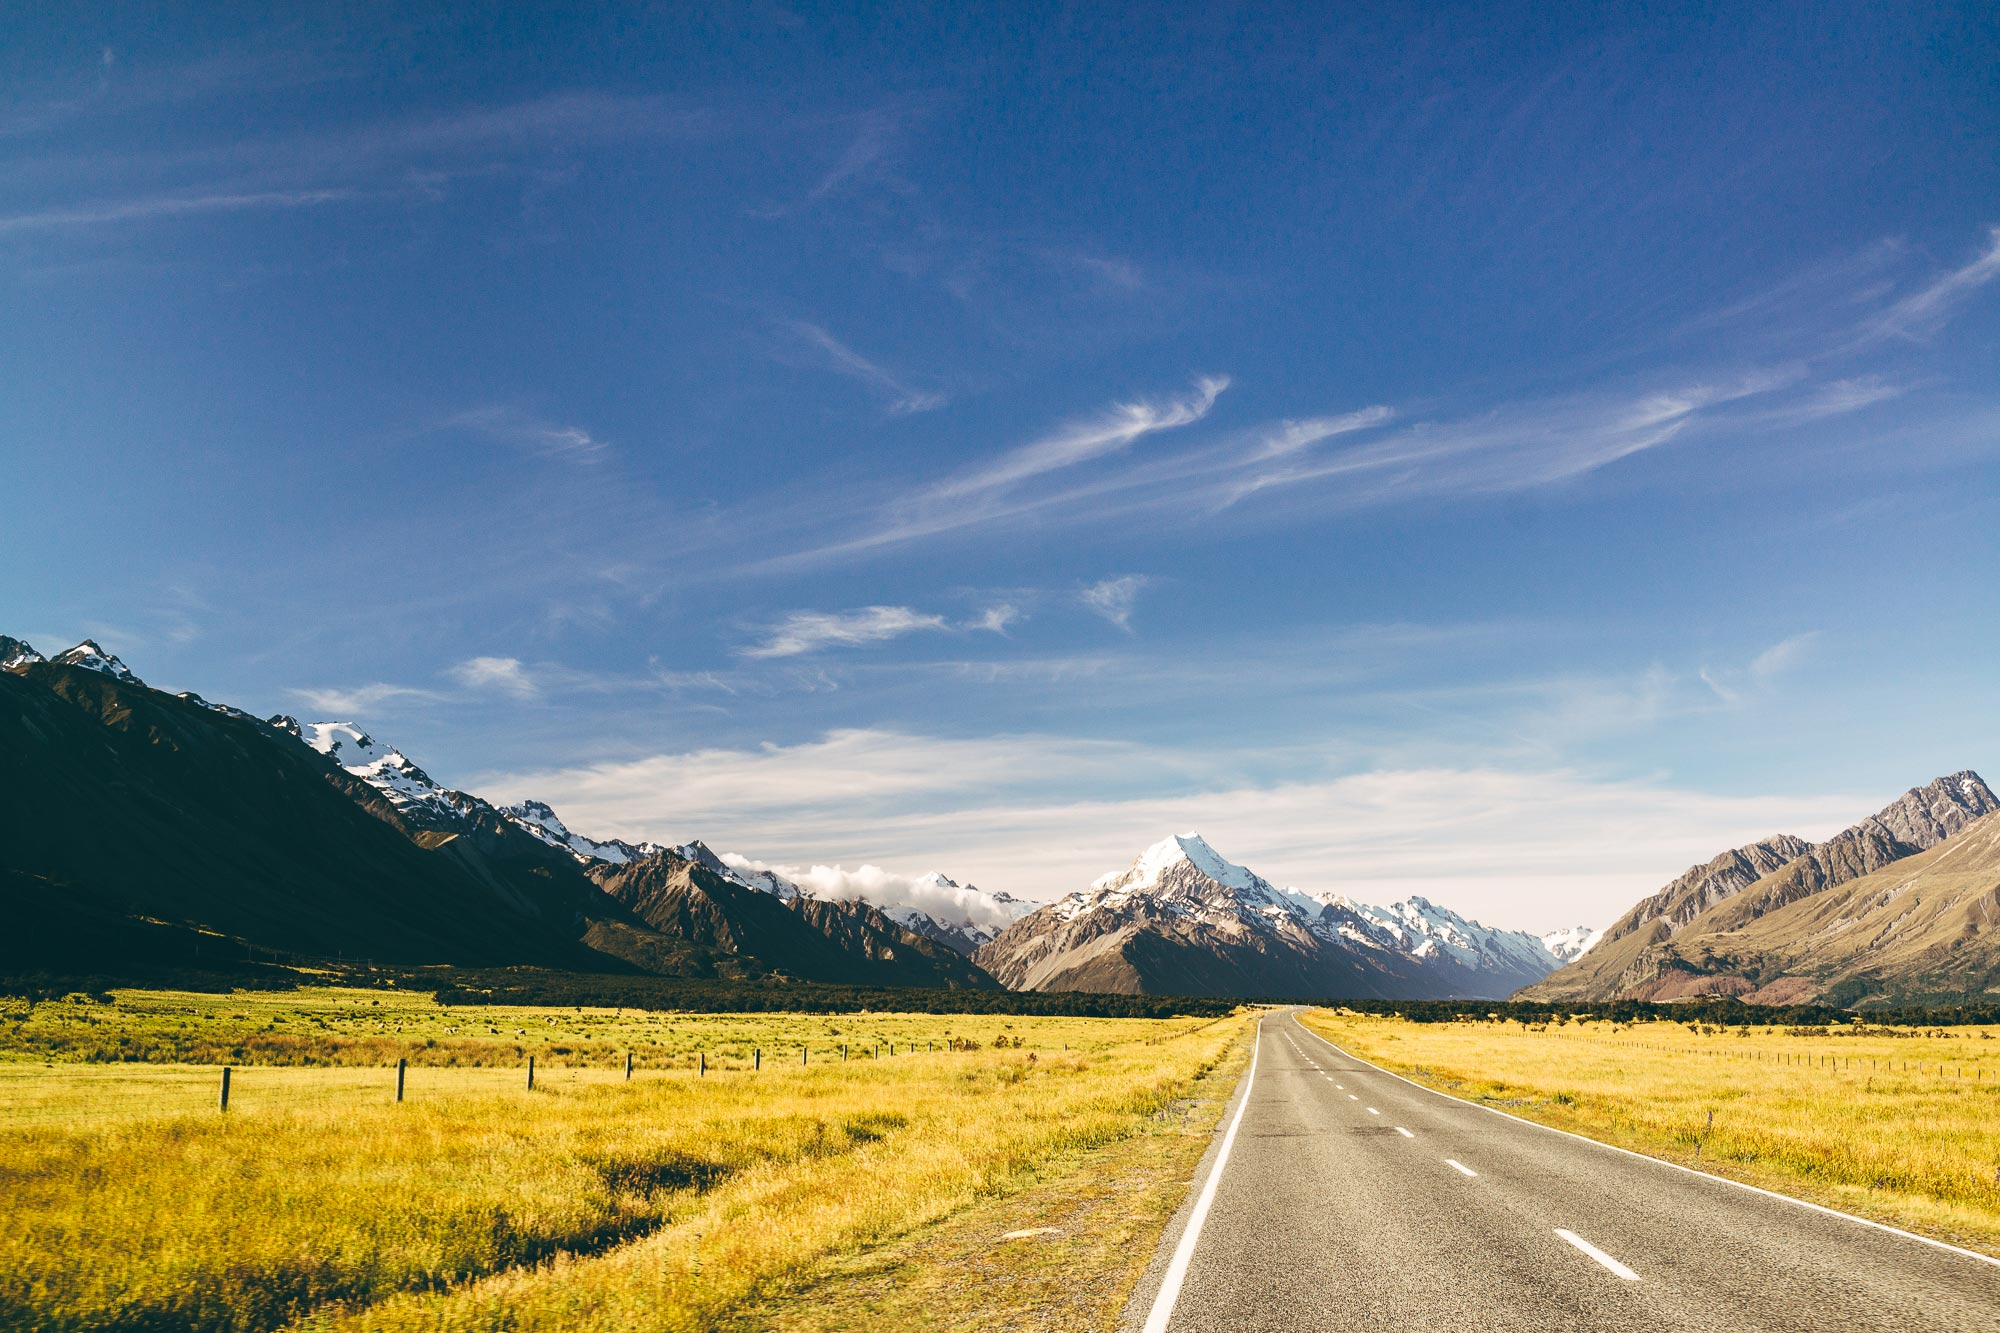 Taking the scenic highway to Mt Cook in New Zealand